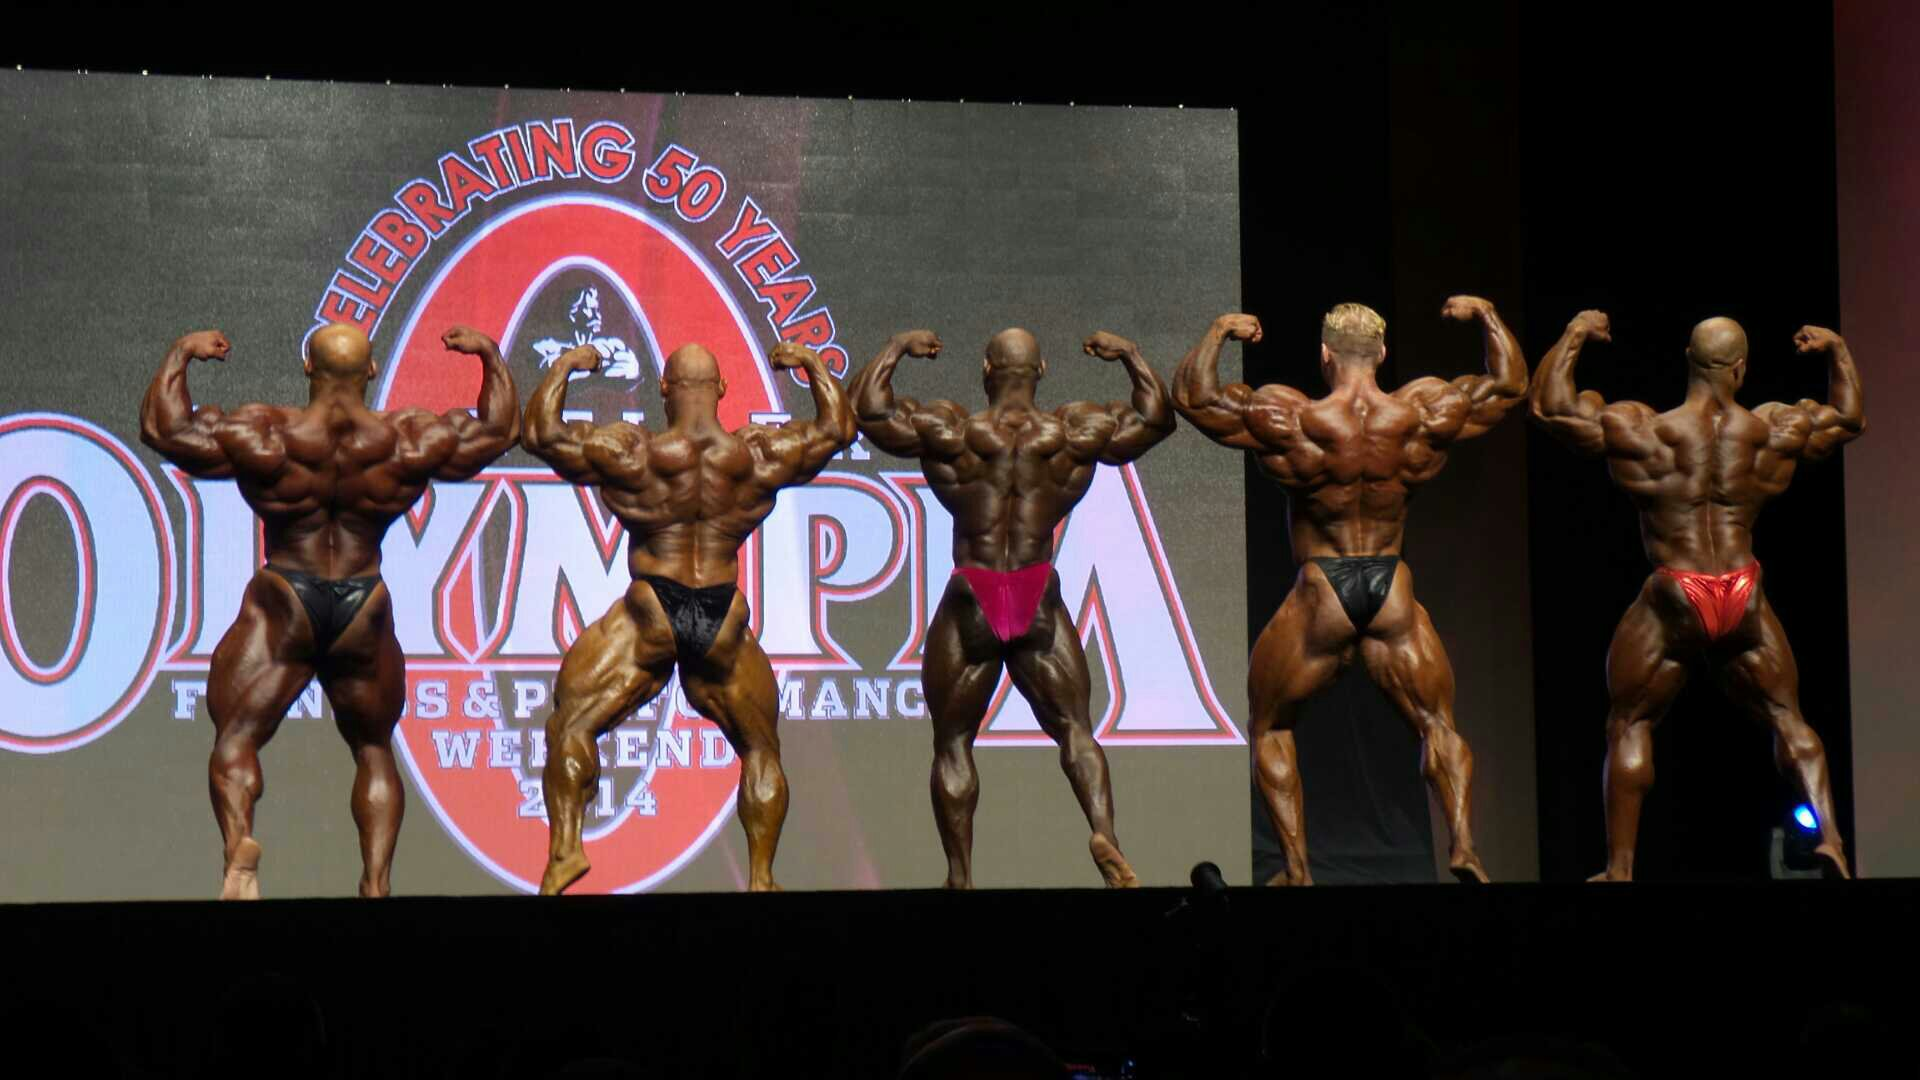 Mr. Olympia 2014 Webcast Ypapejep